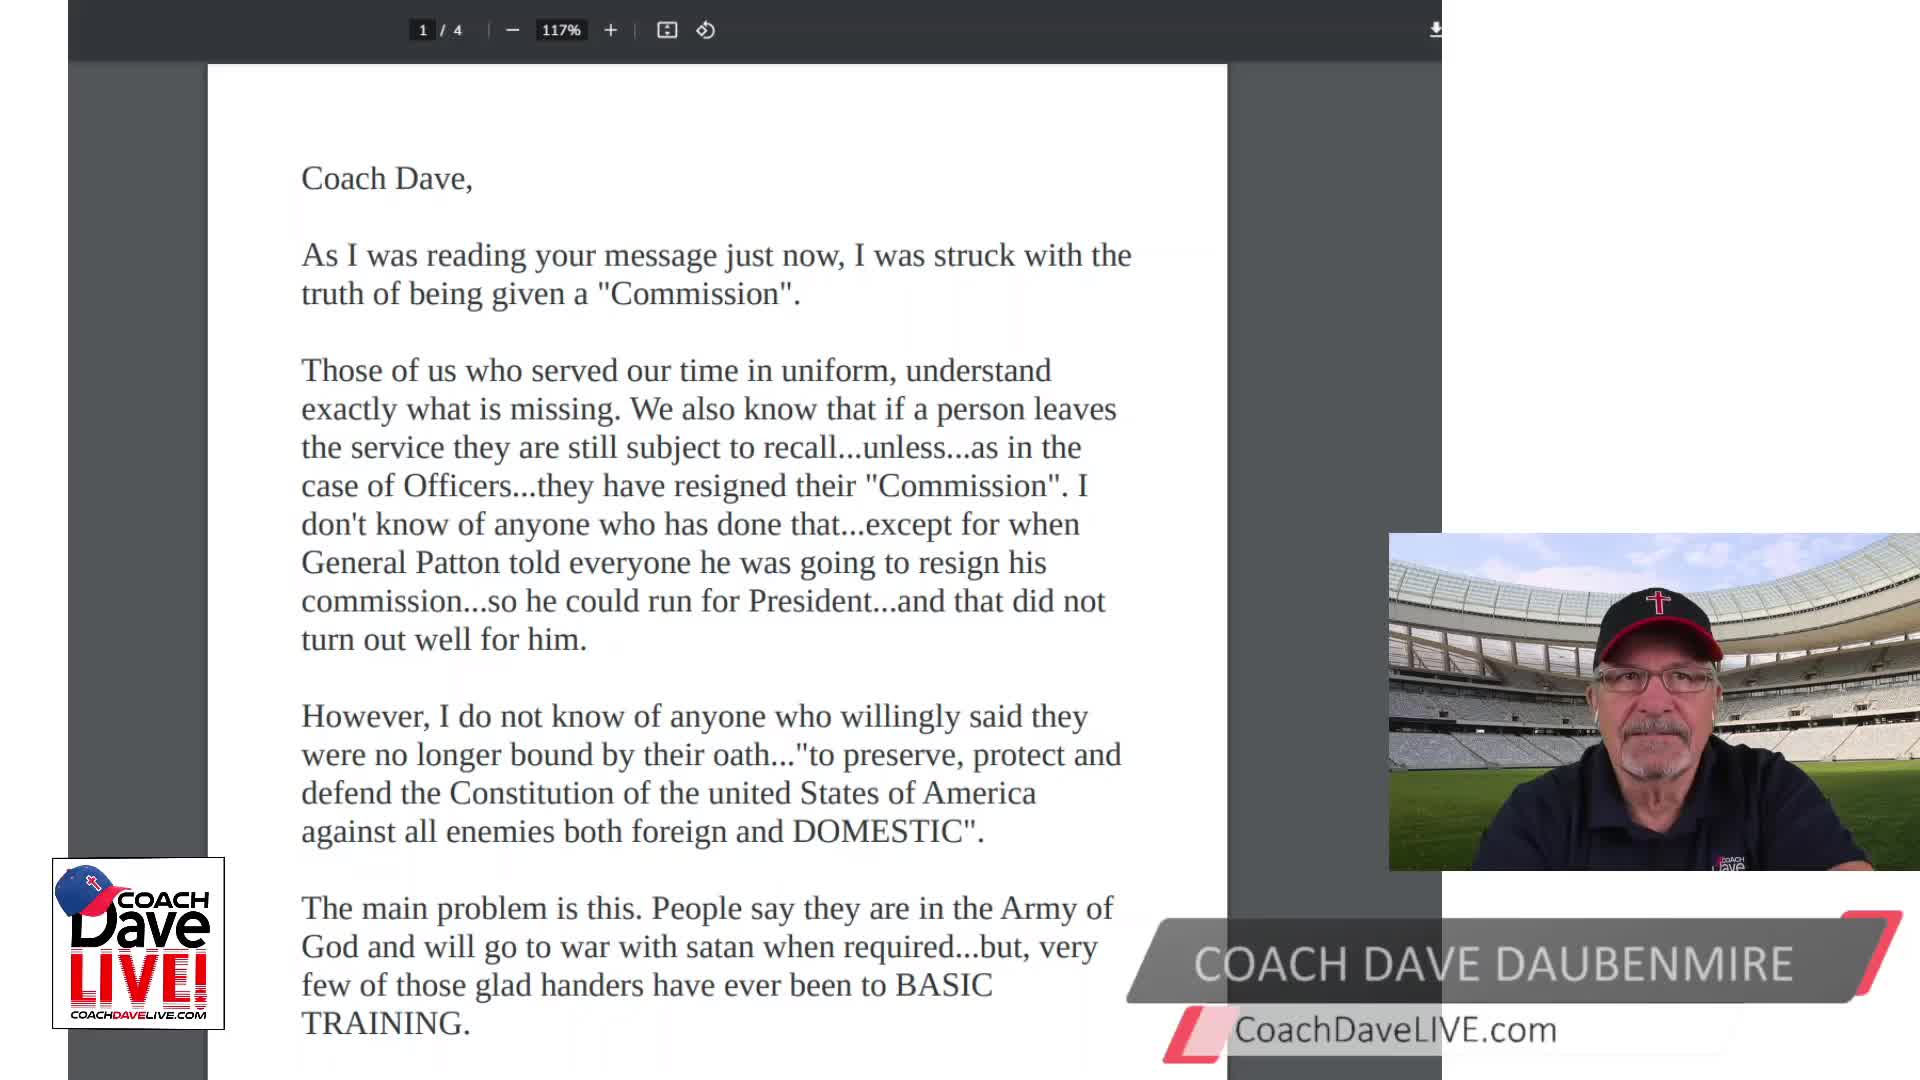 Coach Dave LIVE | 4-5-2021 | EASTER EGGS FROM HELICOPTERS? REALLY? - AUDIO ONLY